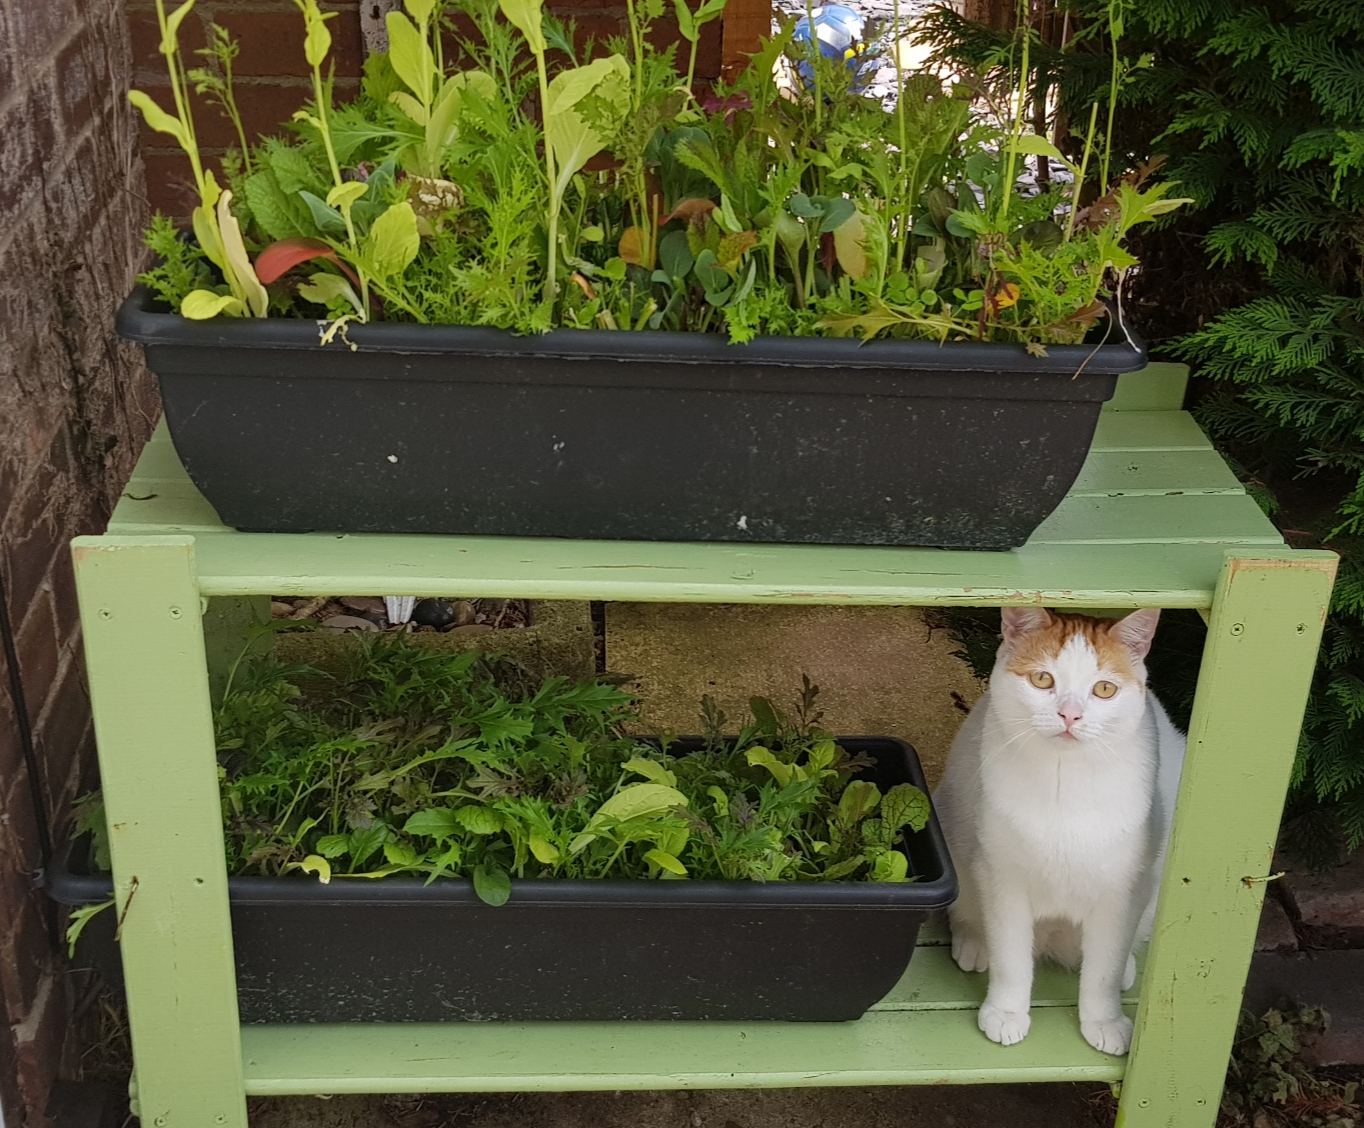 White and ginger cat sitting on a shelf outdoors next to a trough of salad leaves